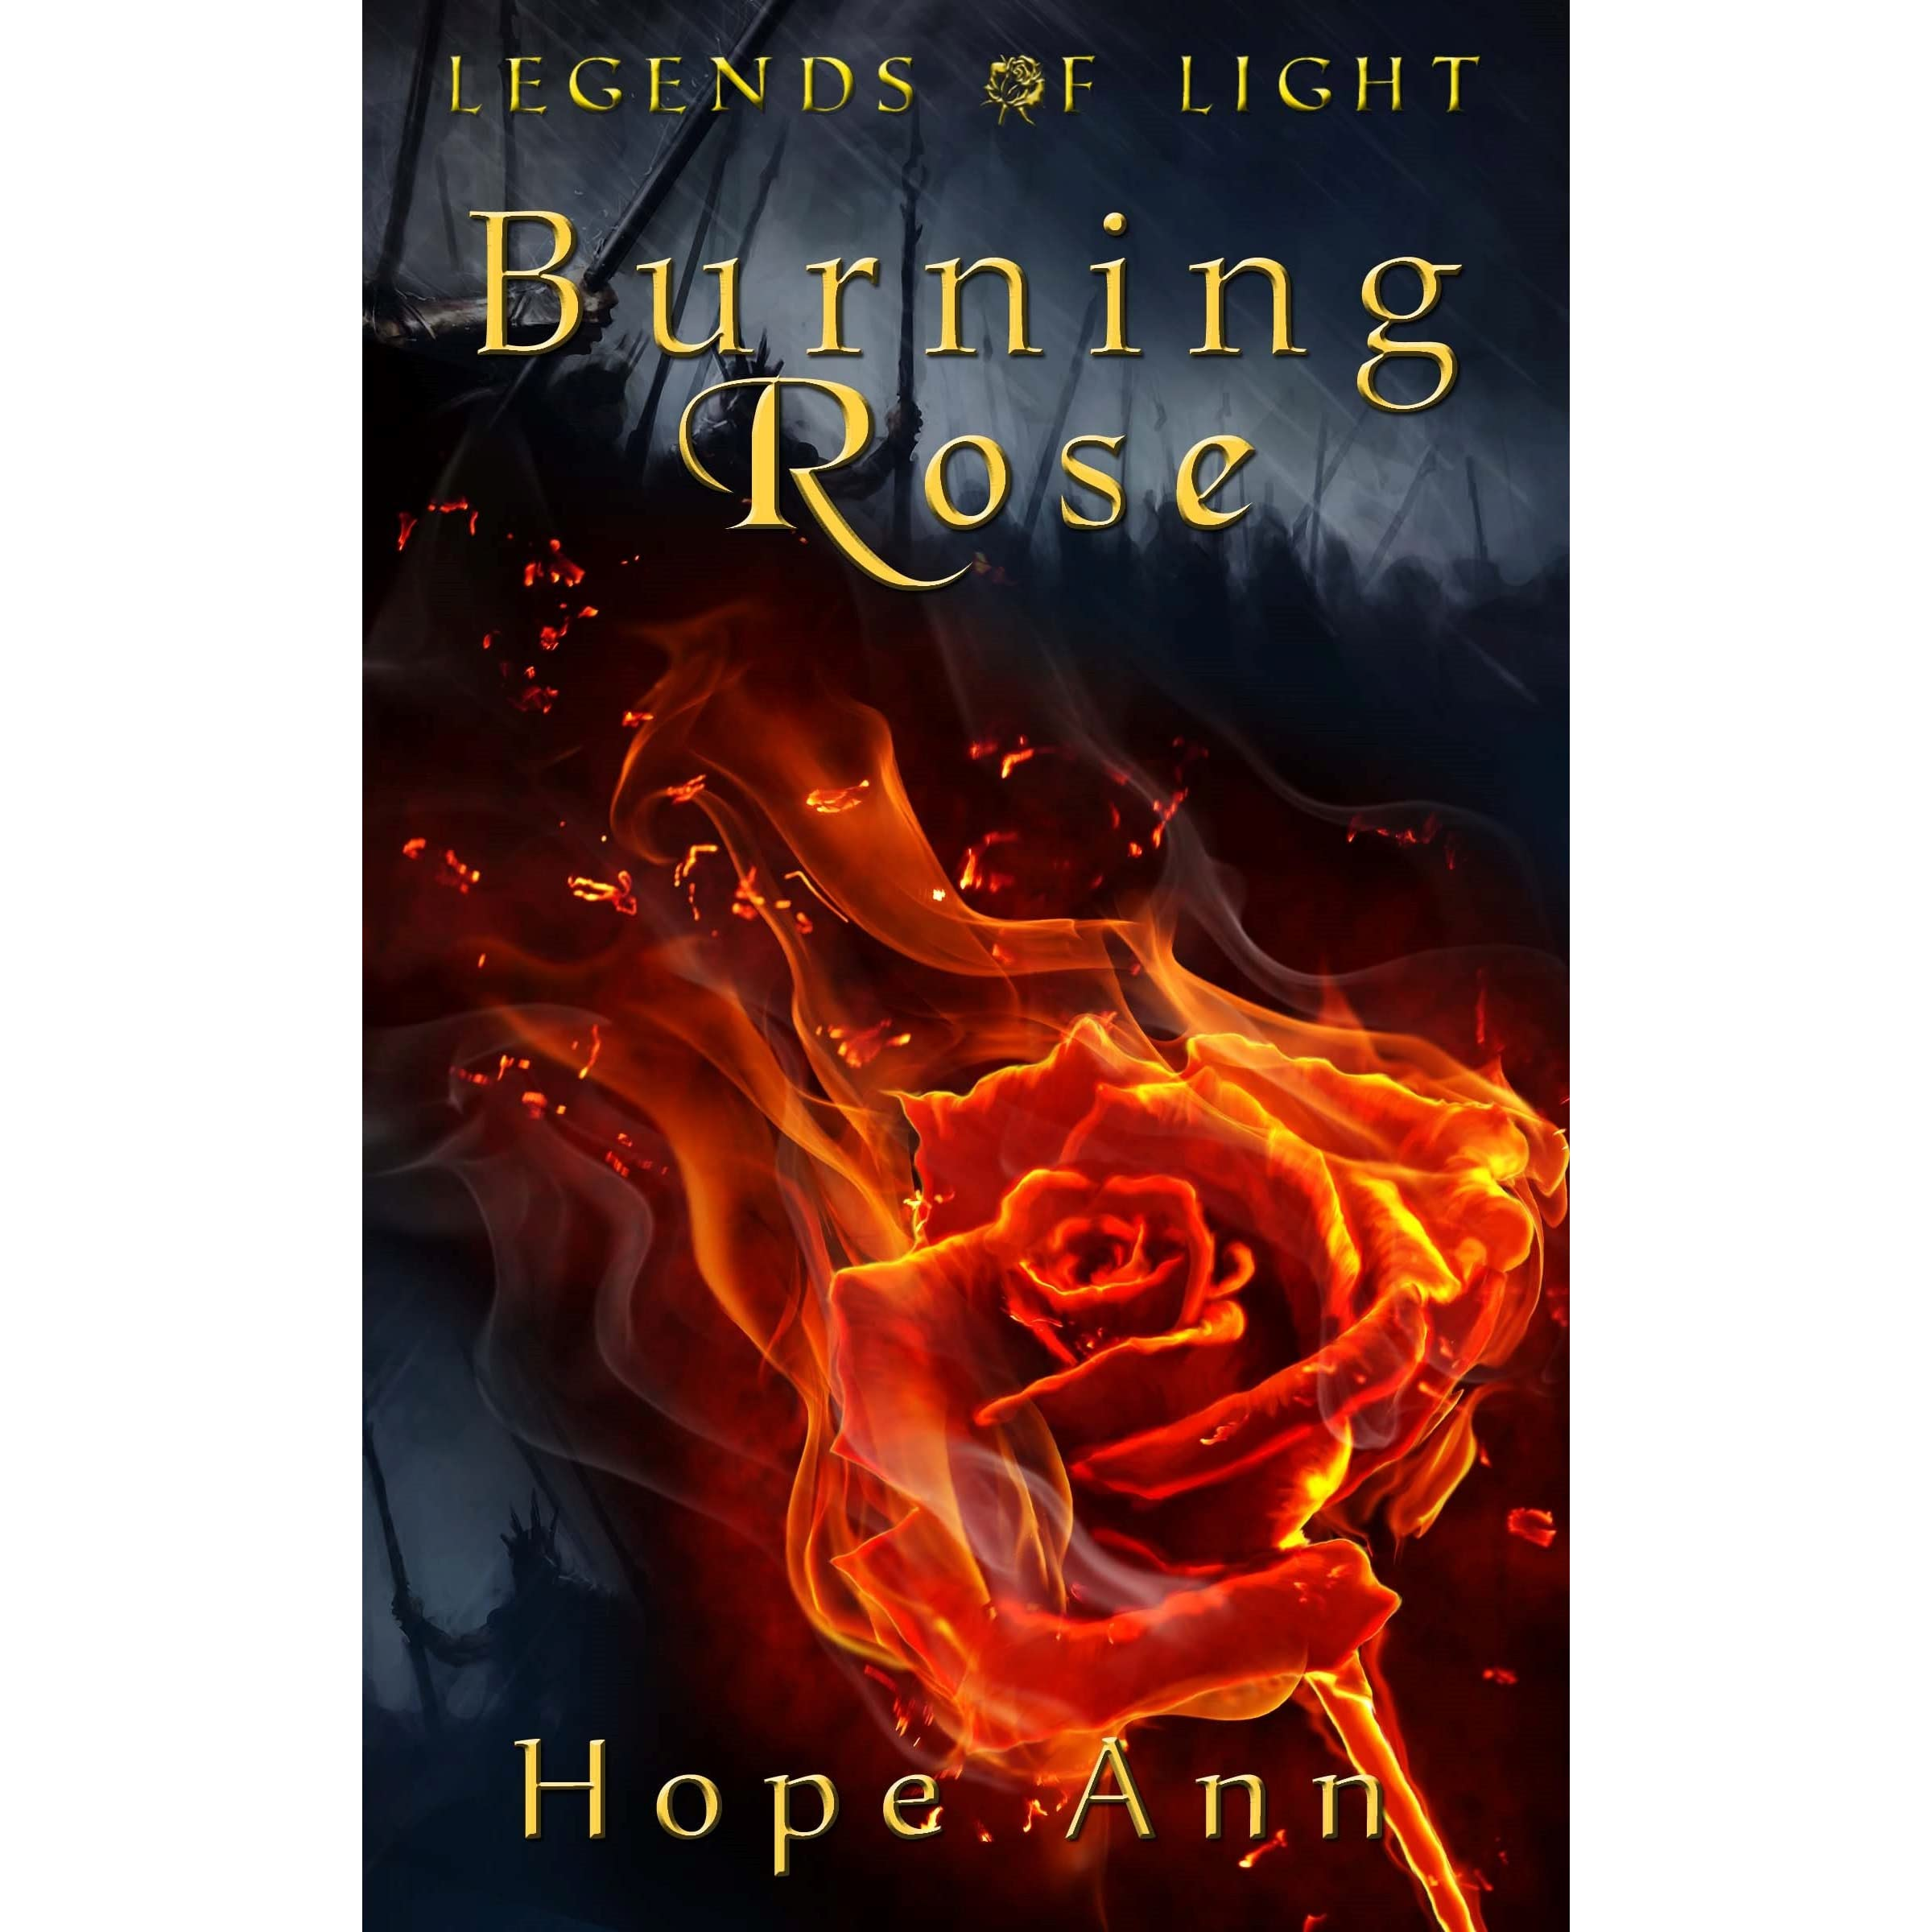 Burning rose legends of light 1 3 by hope ann fandeluxe Image collections